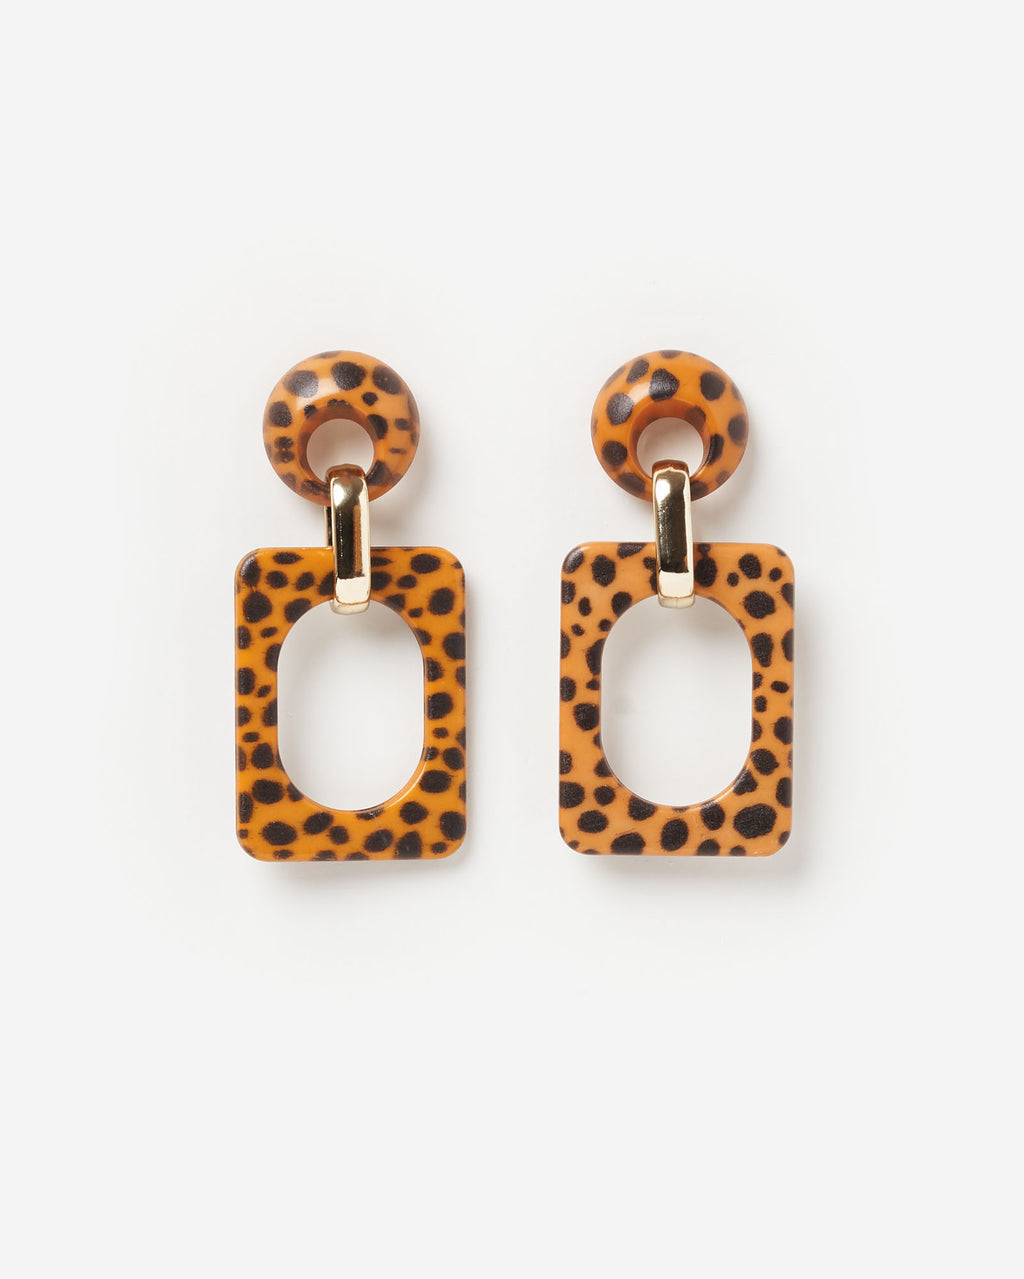 Izoa Jungle Fever Earrings in Leopard